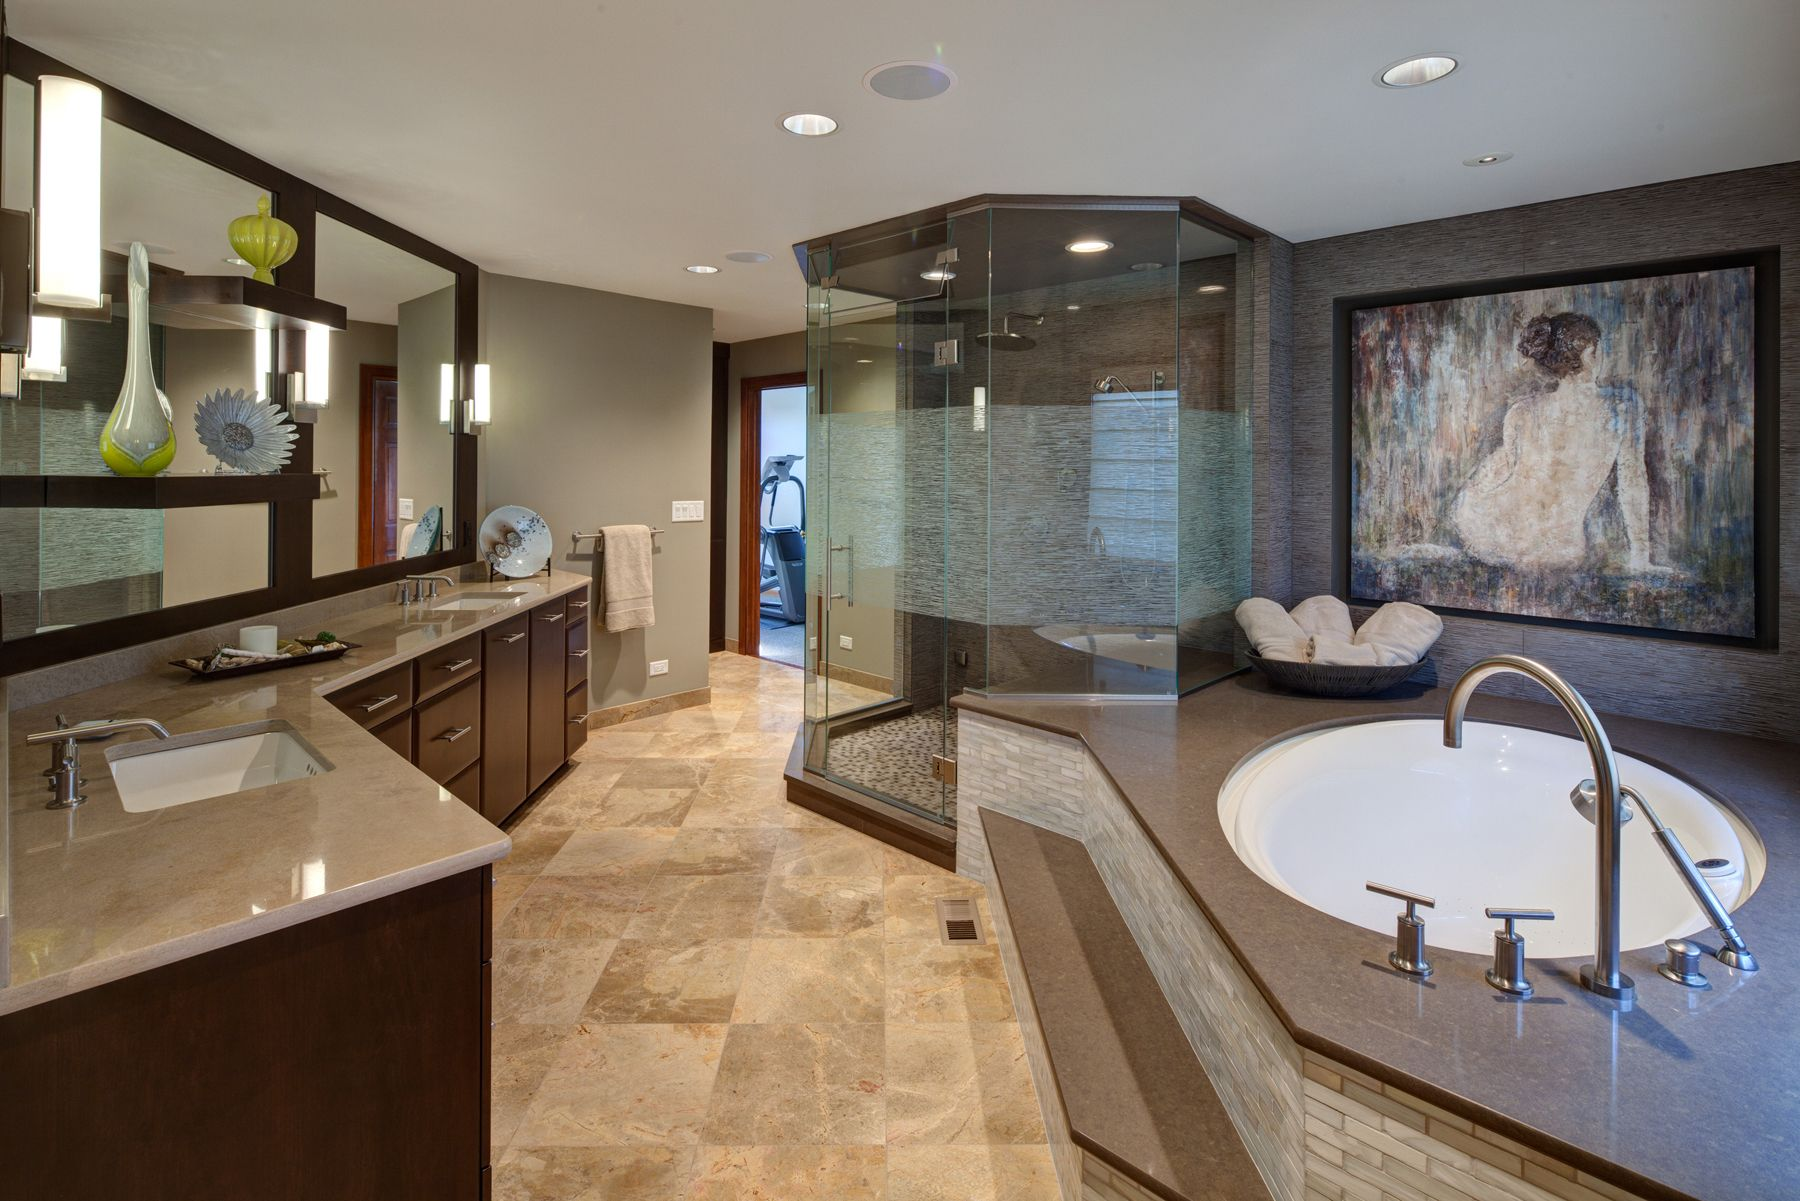 Spa bathroom suites - Master Bath Suite With Double Tub Walk In Shower And Asian Design Inspirations